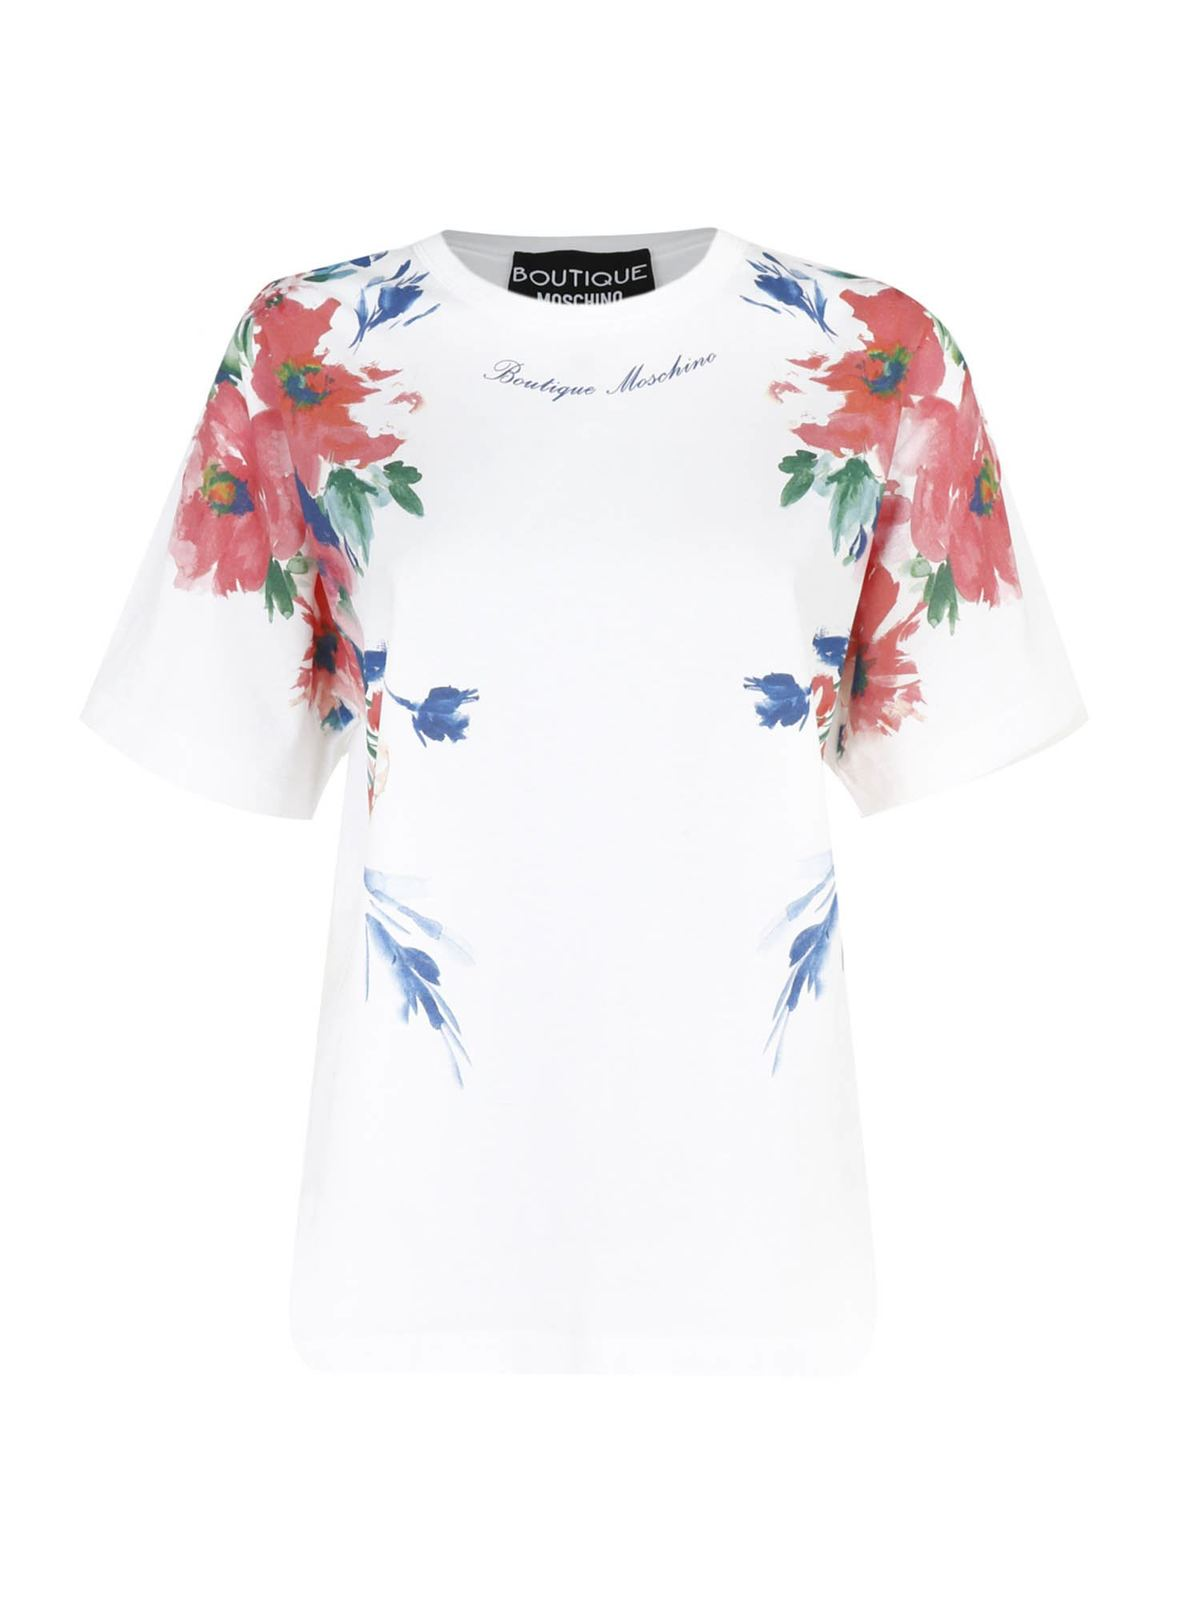 Moschino Boutique Cottons FLORAL PRINT T-SHIRT IN WHITE